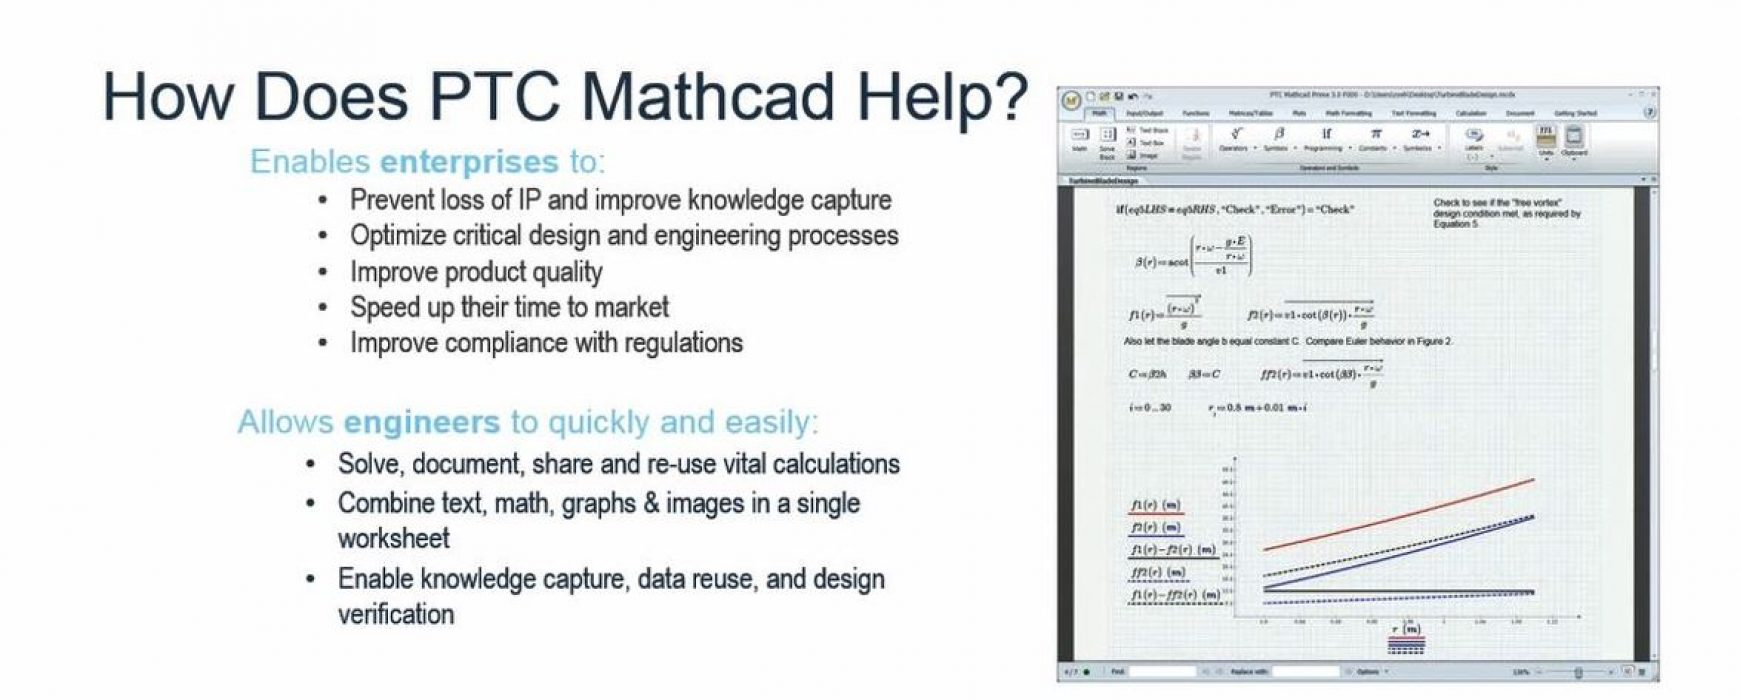 Mathcad Spreadsheet In Ptc Mathcad Category For Resource Center